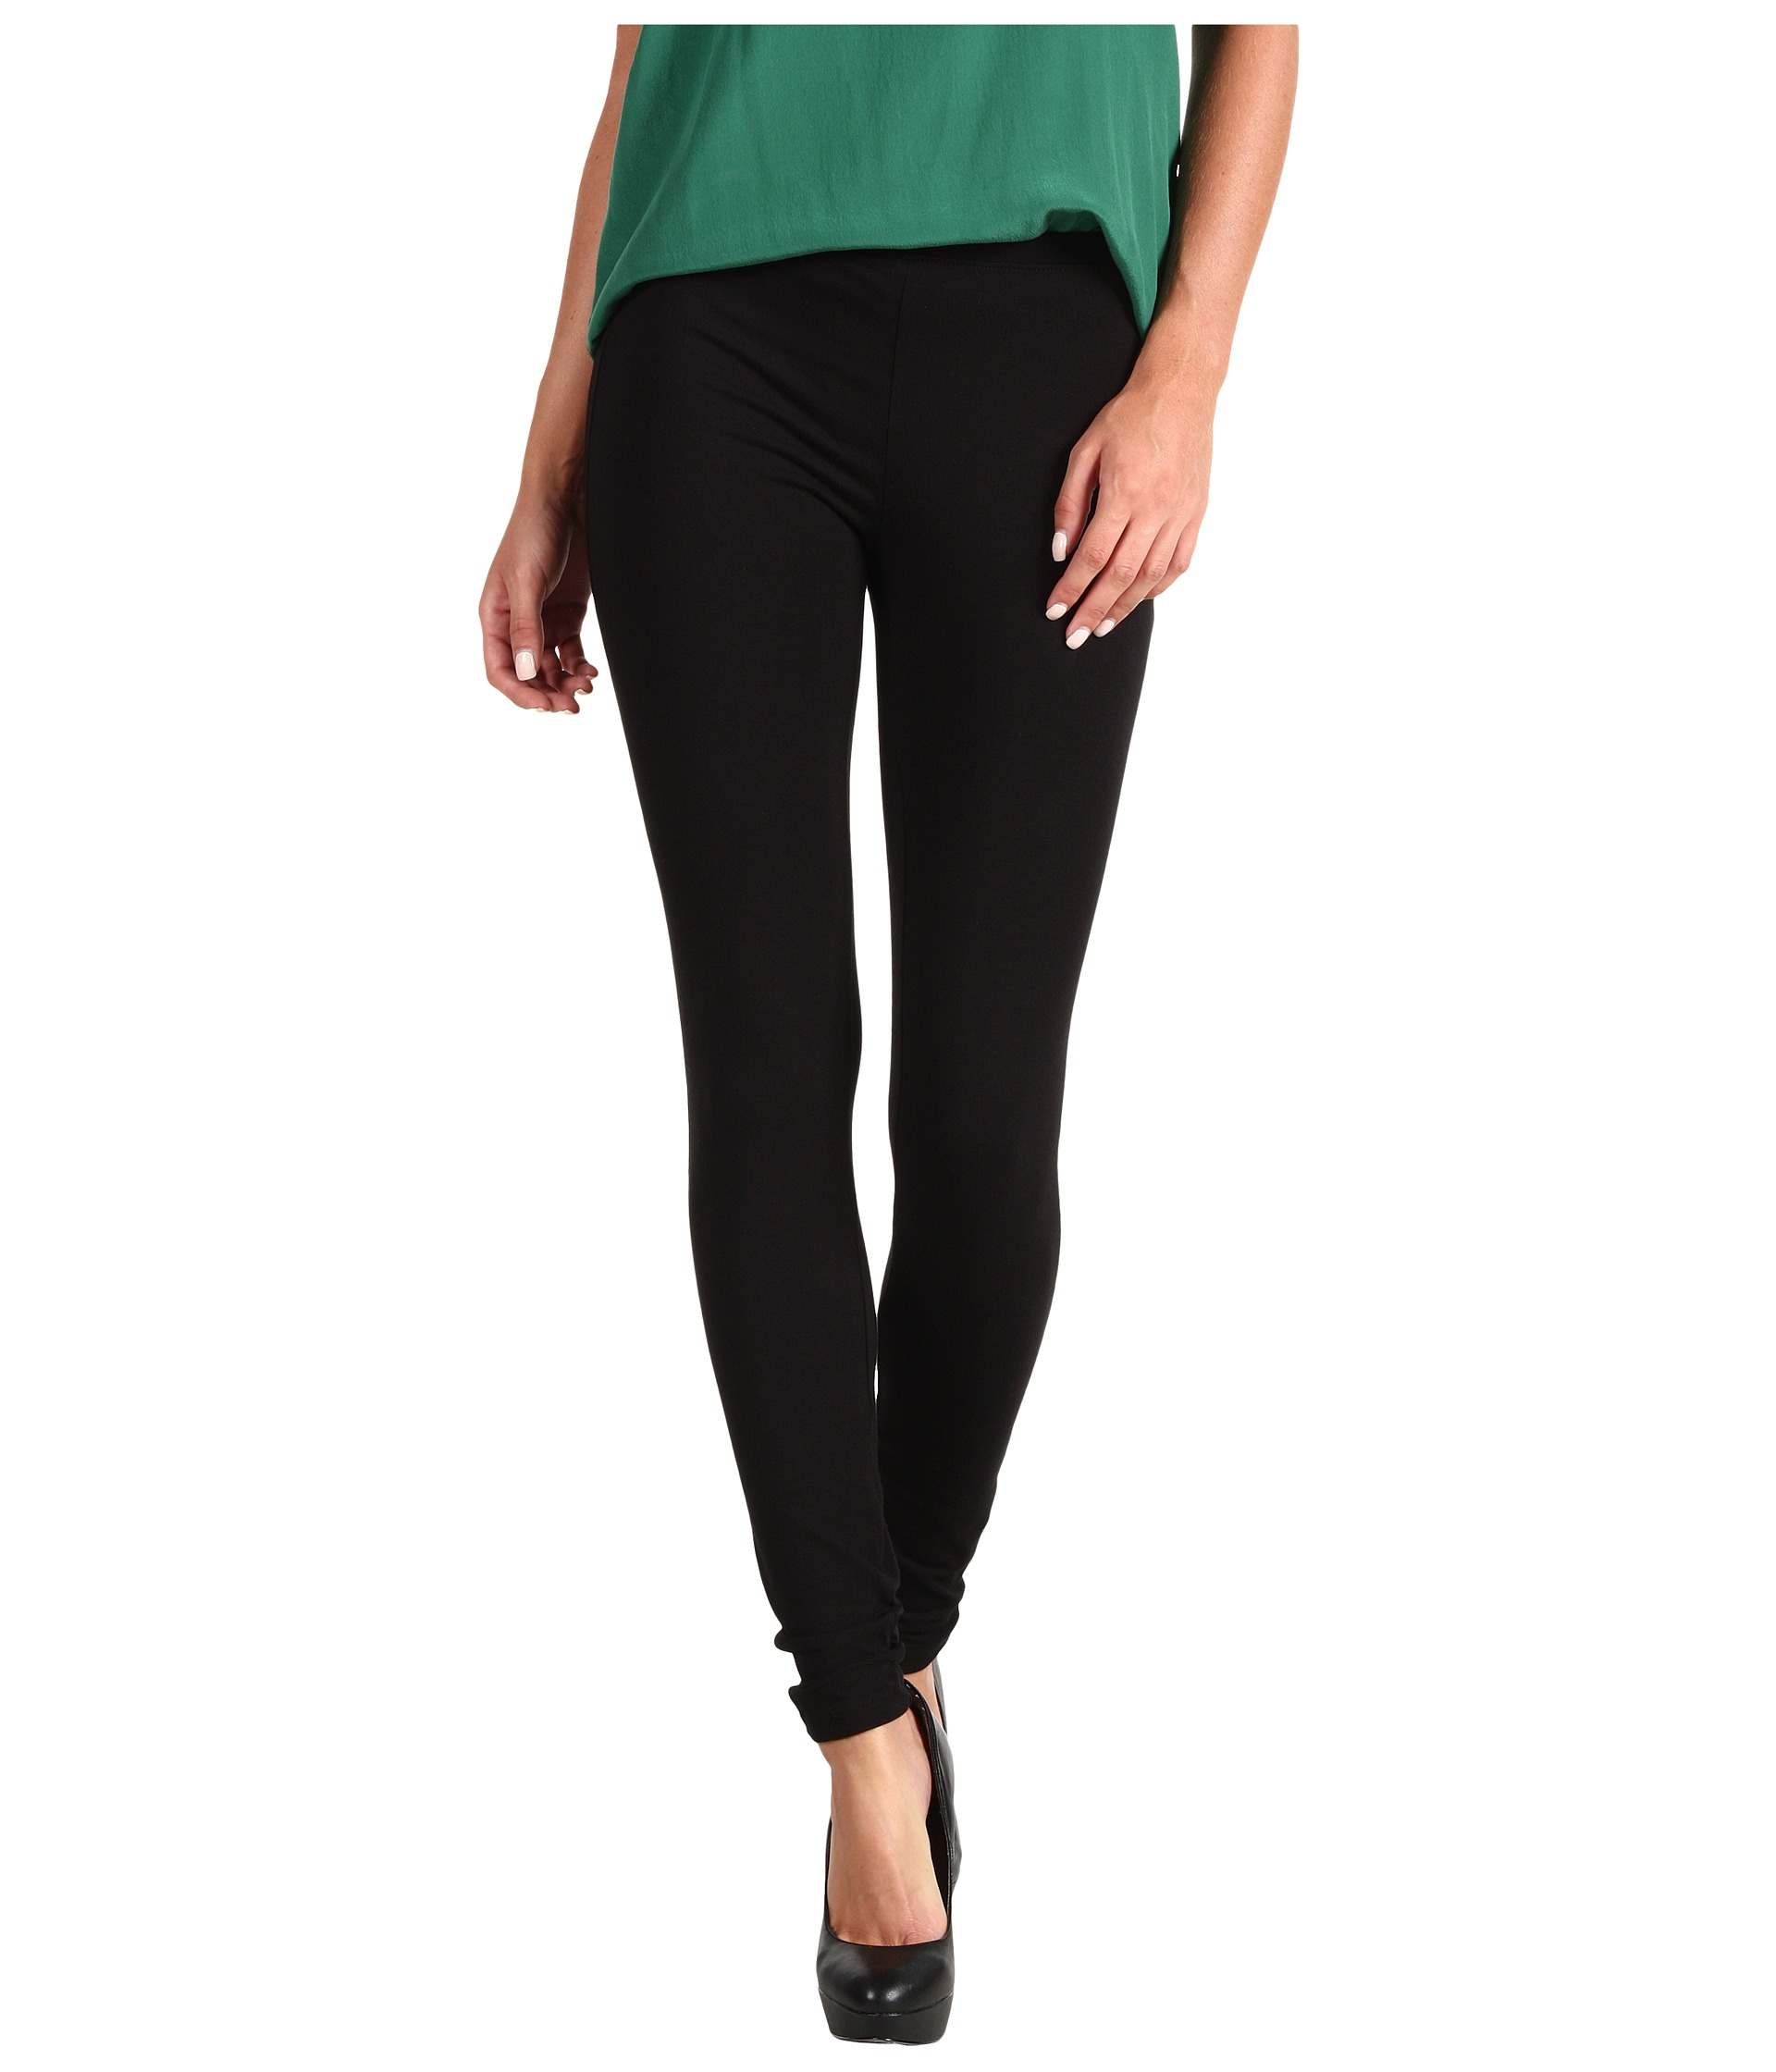 V Star Black Cotton Leggings from the house of VStar. Vanessa leggings made of 95% cotton fabric and 5% elastane fabric, which has 4 way stretchable feature.